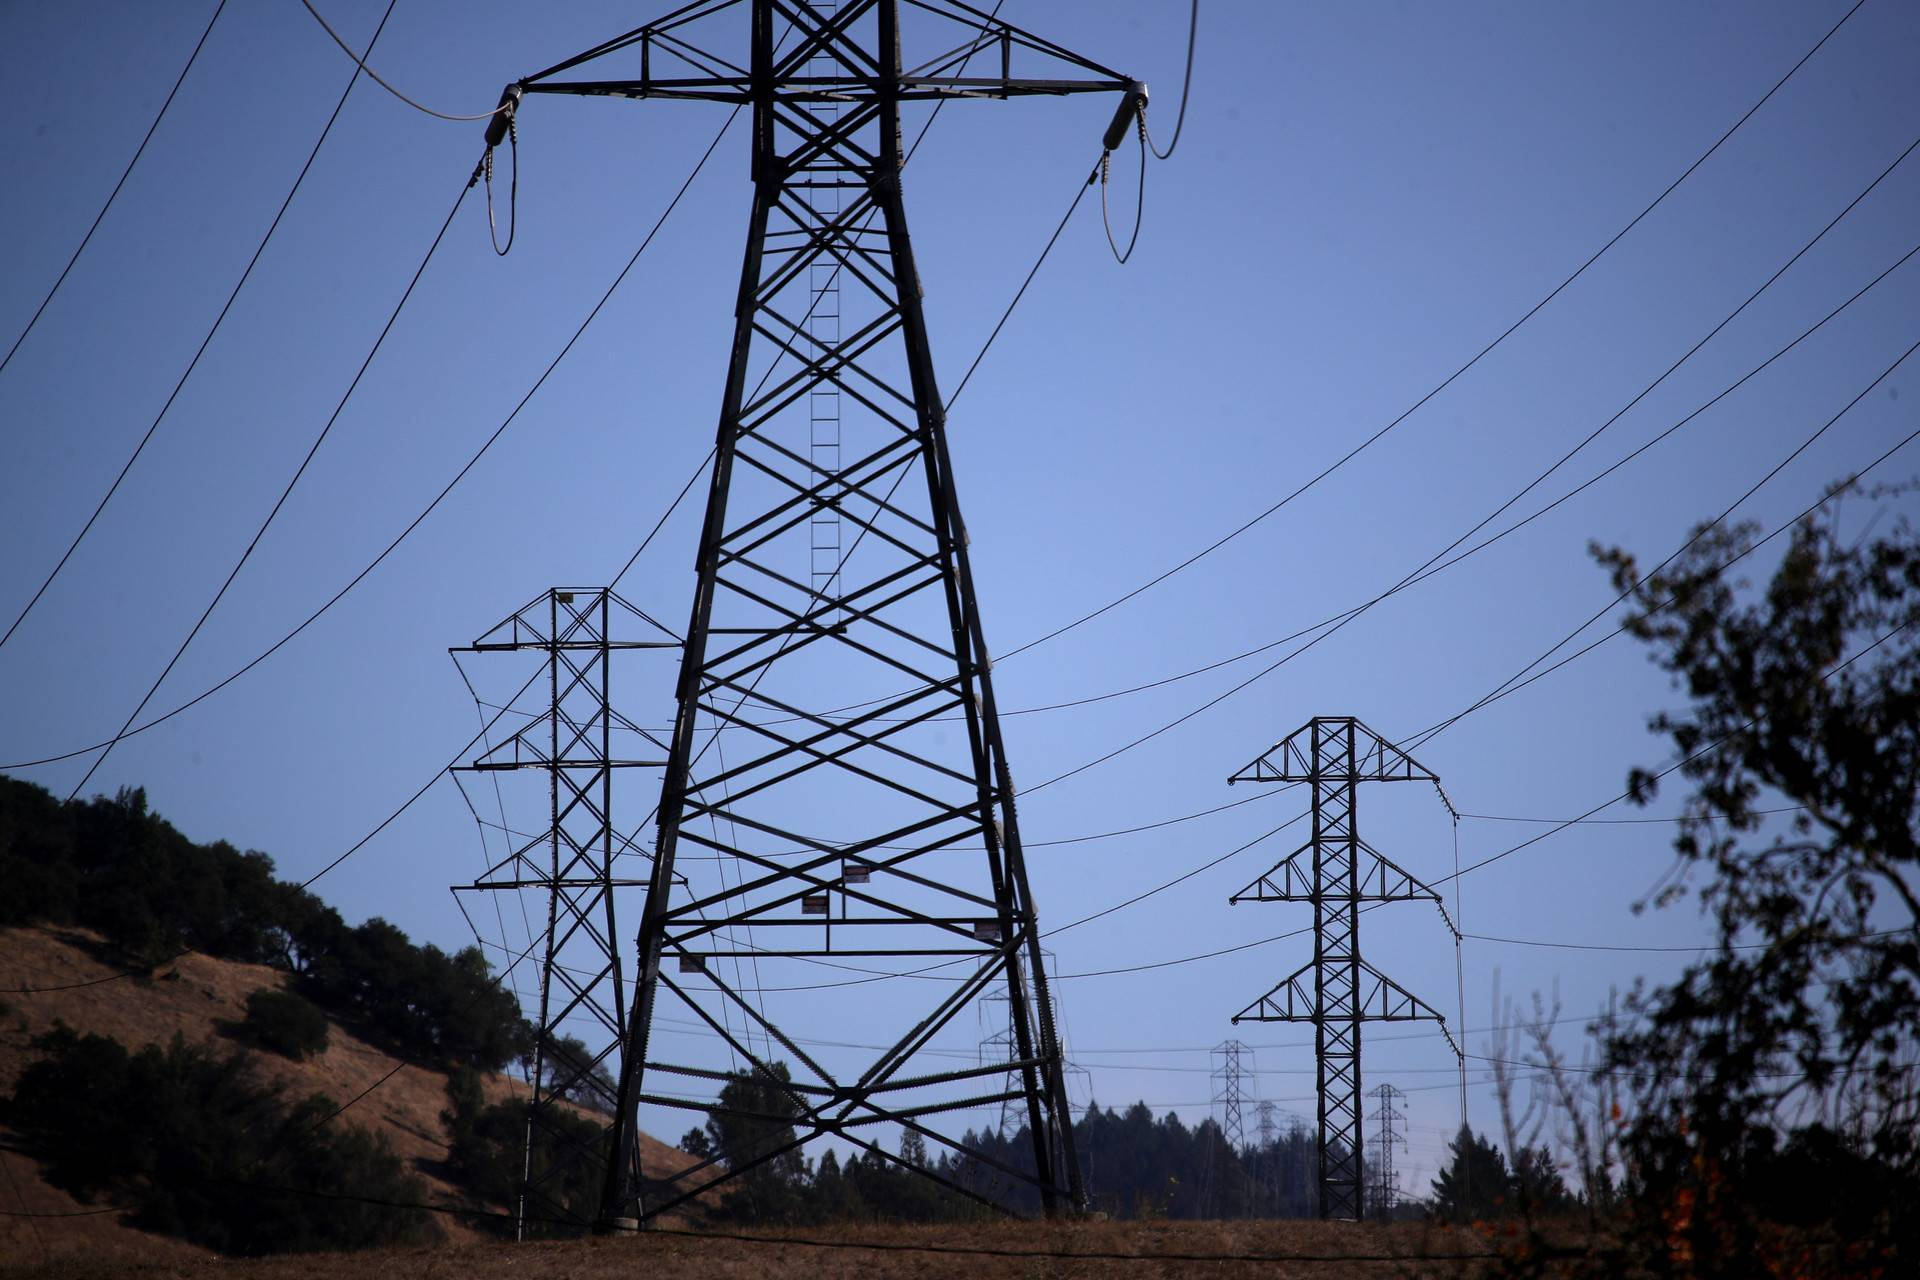 PG&E transmission lines near Santa Rosa in November 2019. Justin Sullivan/Getty Images